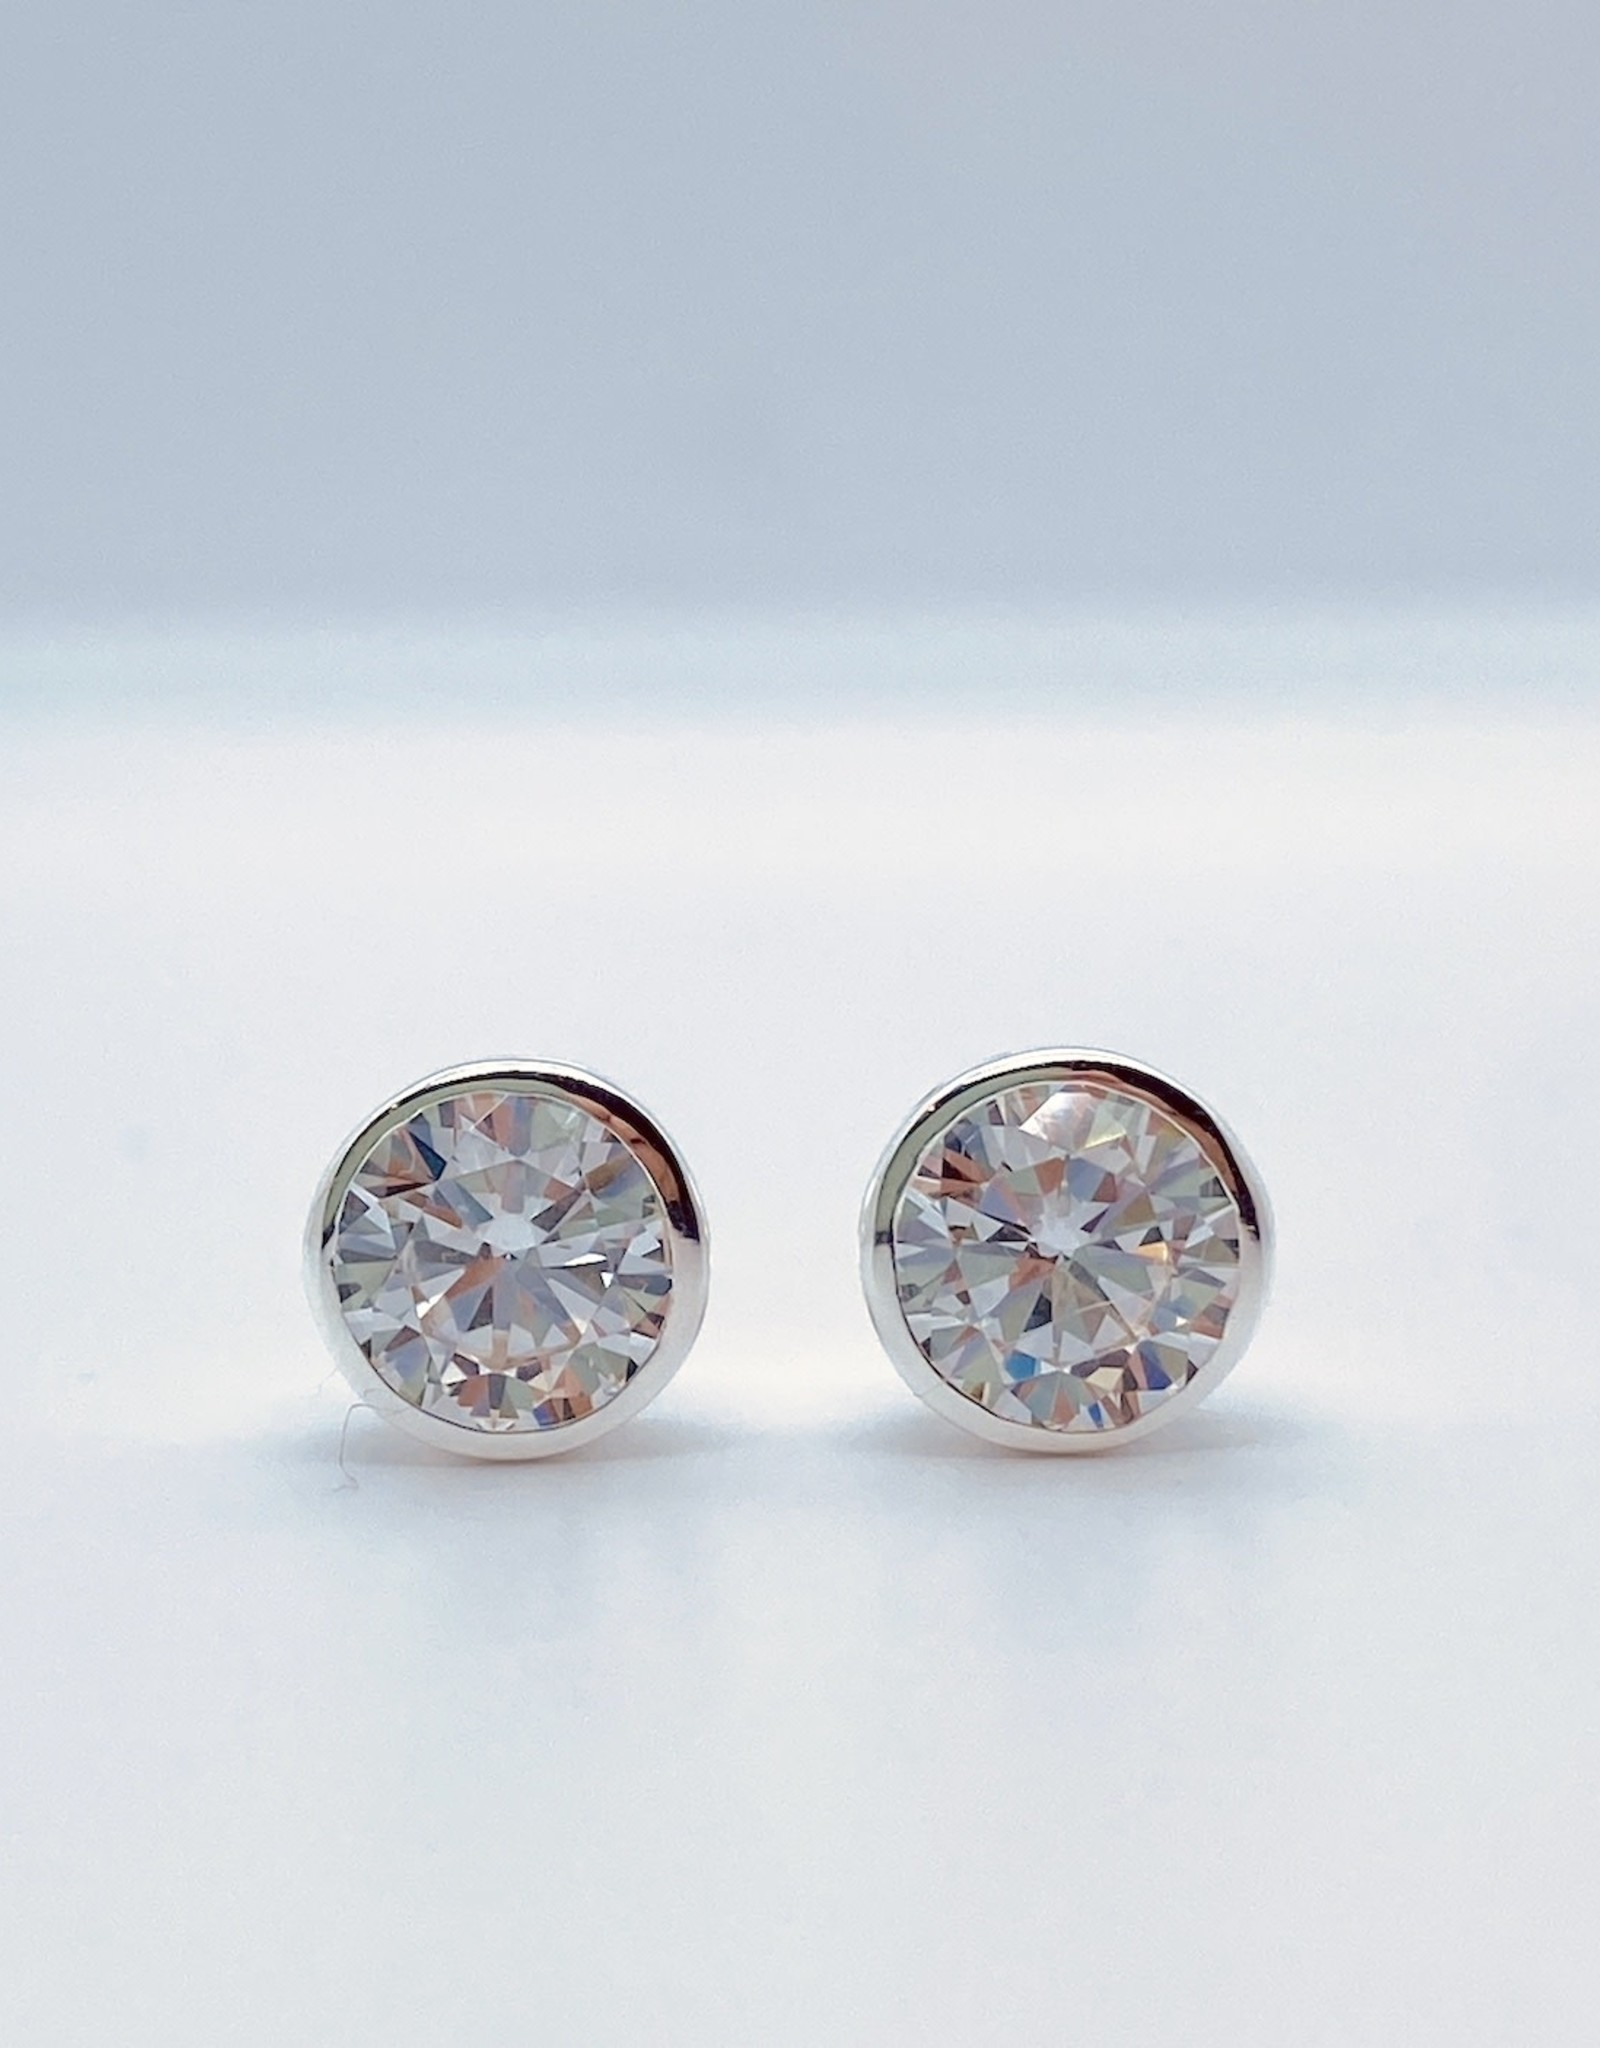 Silver Bezel Set CZ Stud Earrings, 7mm